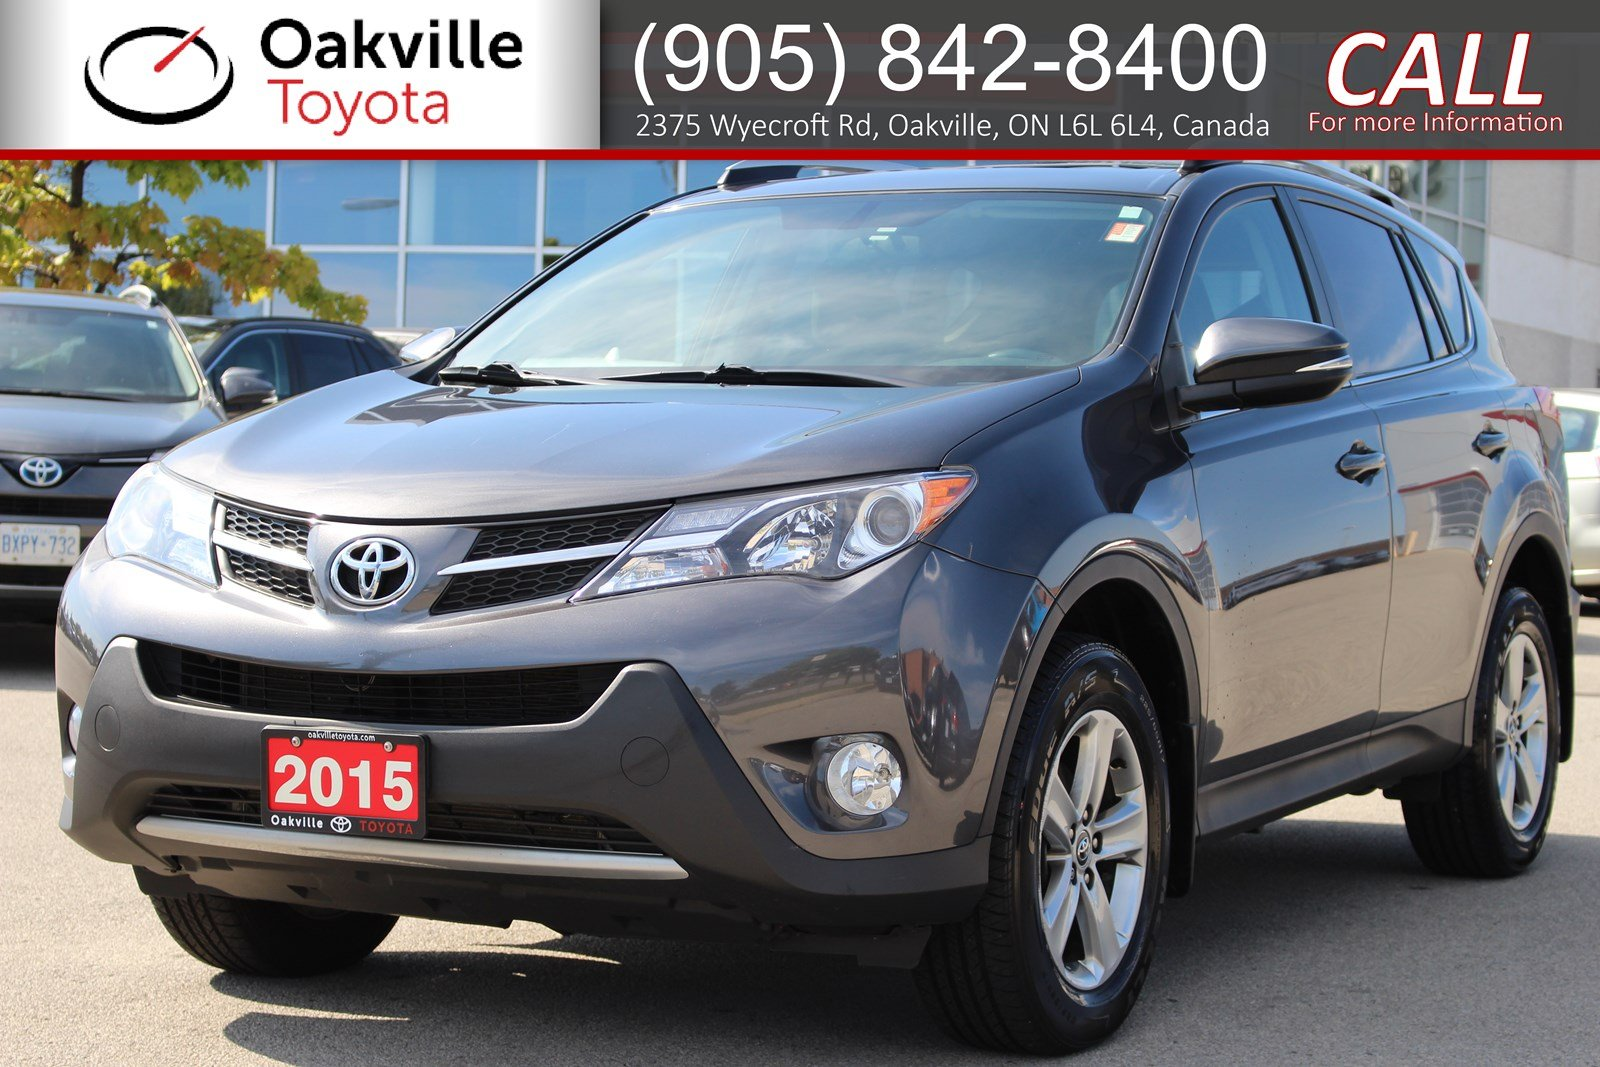 Pre-Owned 2015 Toyota RAV4 XLE AWD with Clean Carfax and One Owner